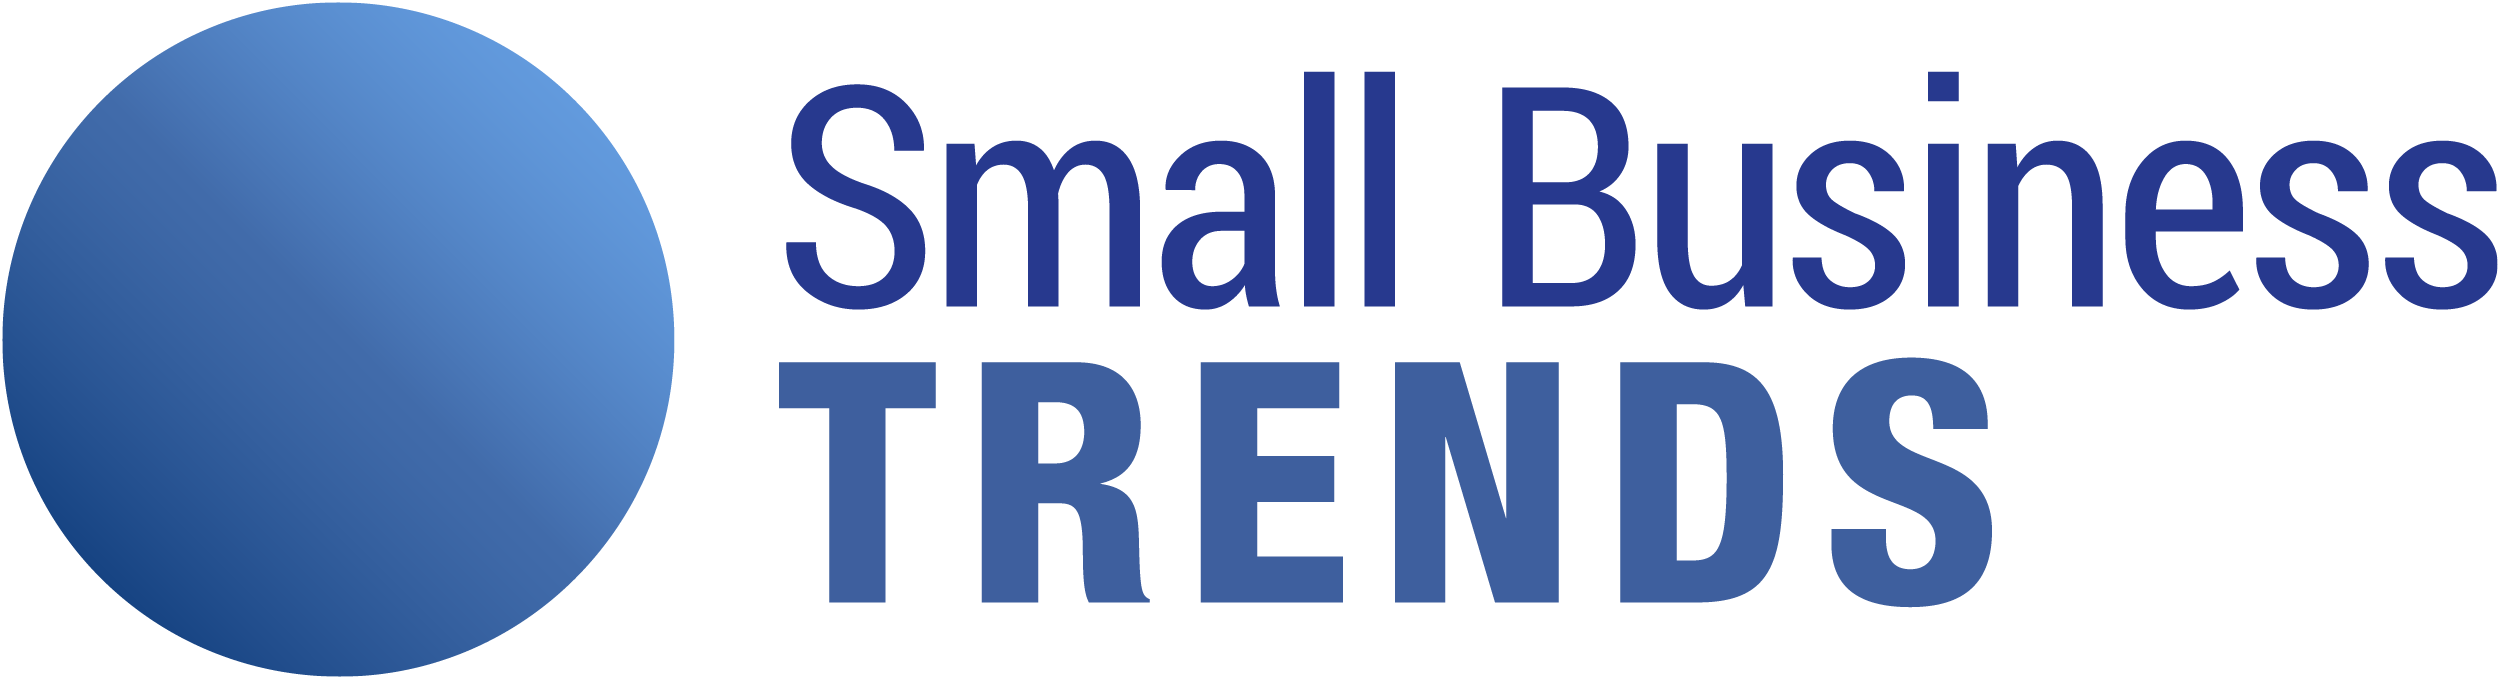 Small business trends logo 2500w press image 1498594874